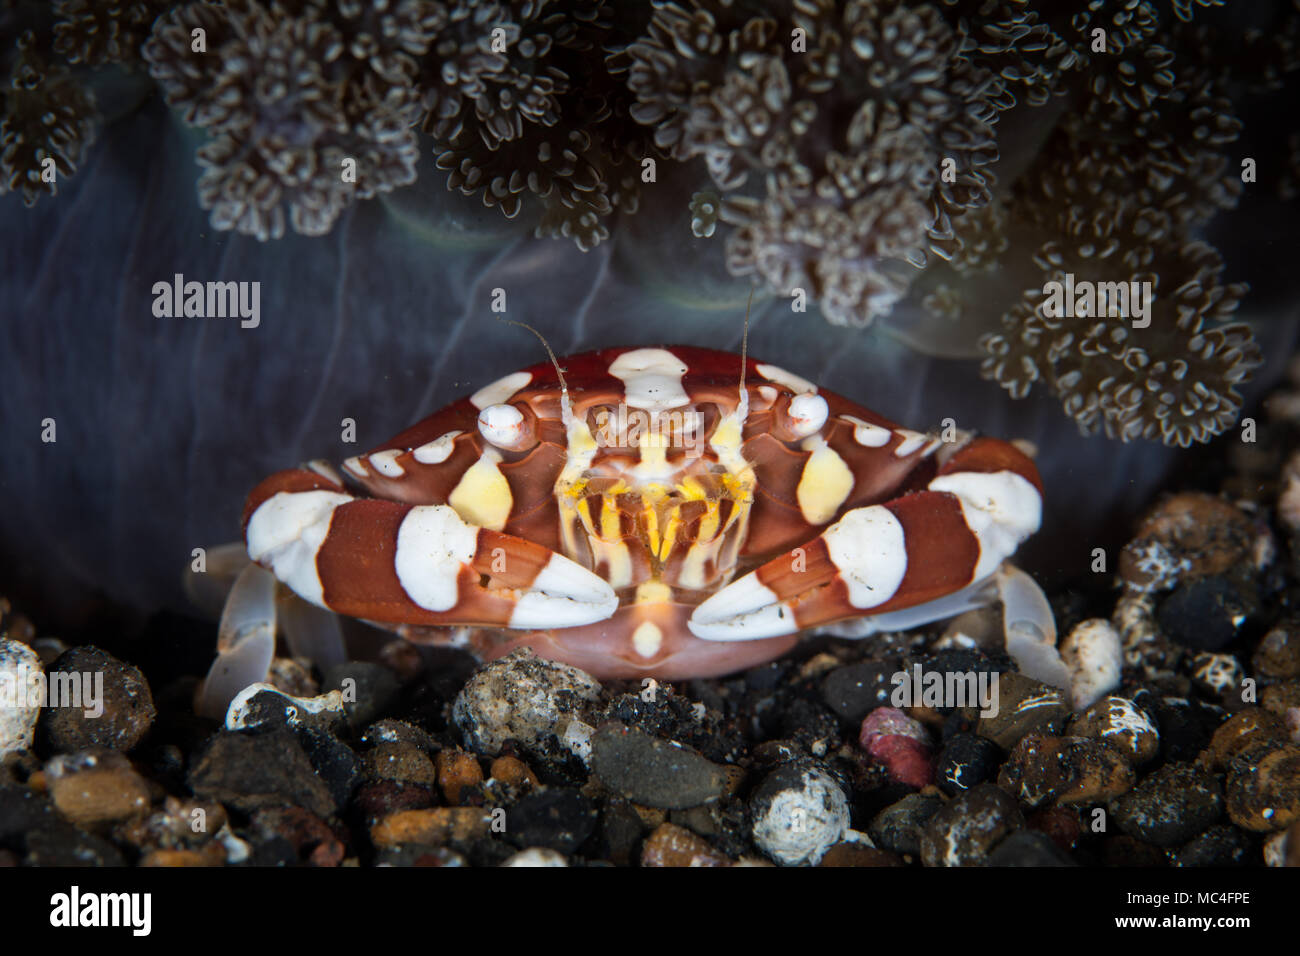 A colorful Harlequin Swimming Crab, Lissocarcinus laevis, sits below the tentacles of a stinging anemone in Lembeh Strait, Indonesia. - Stock Image